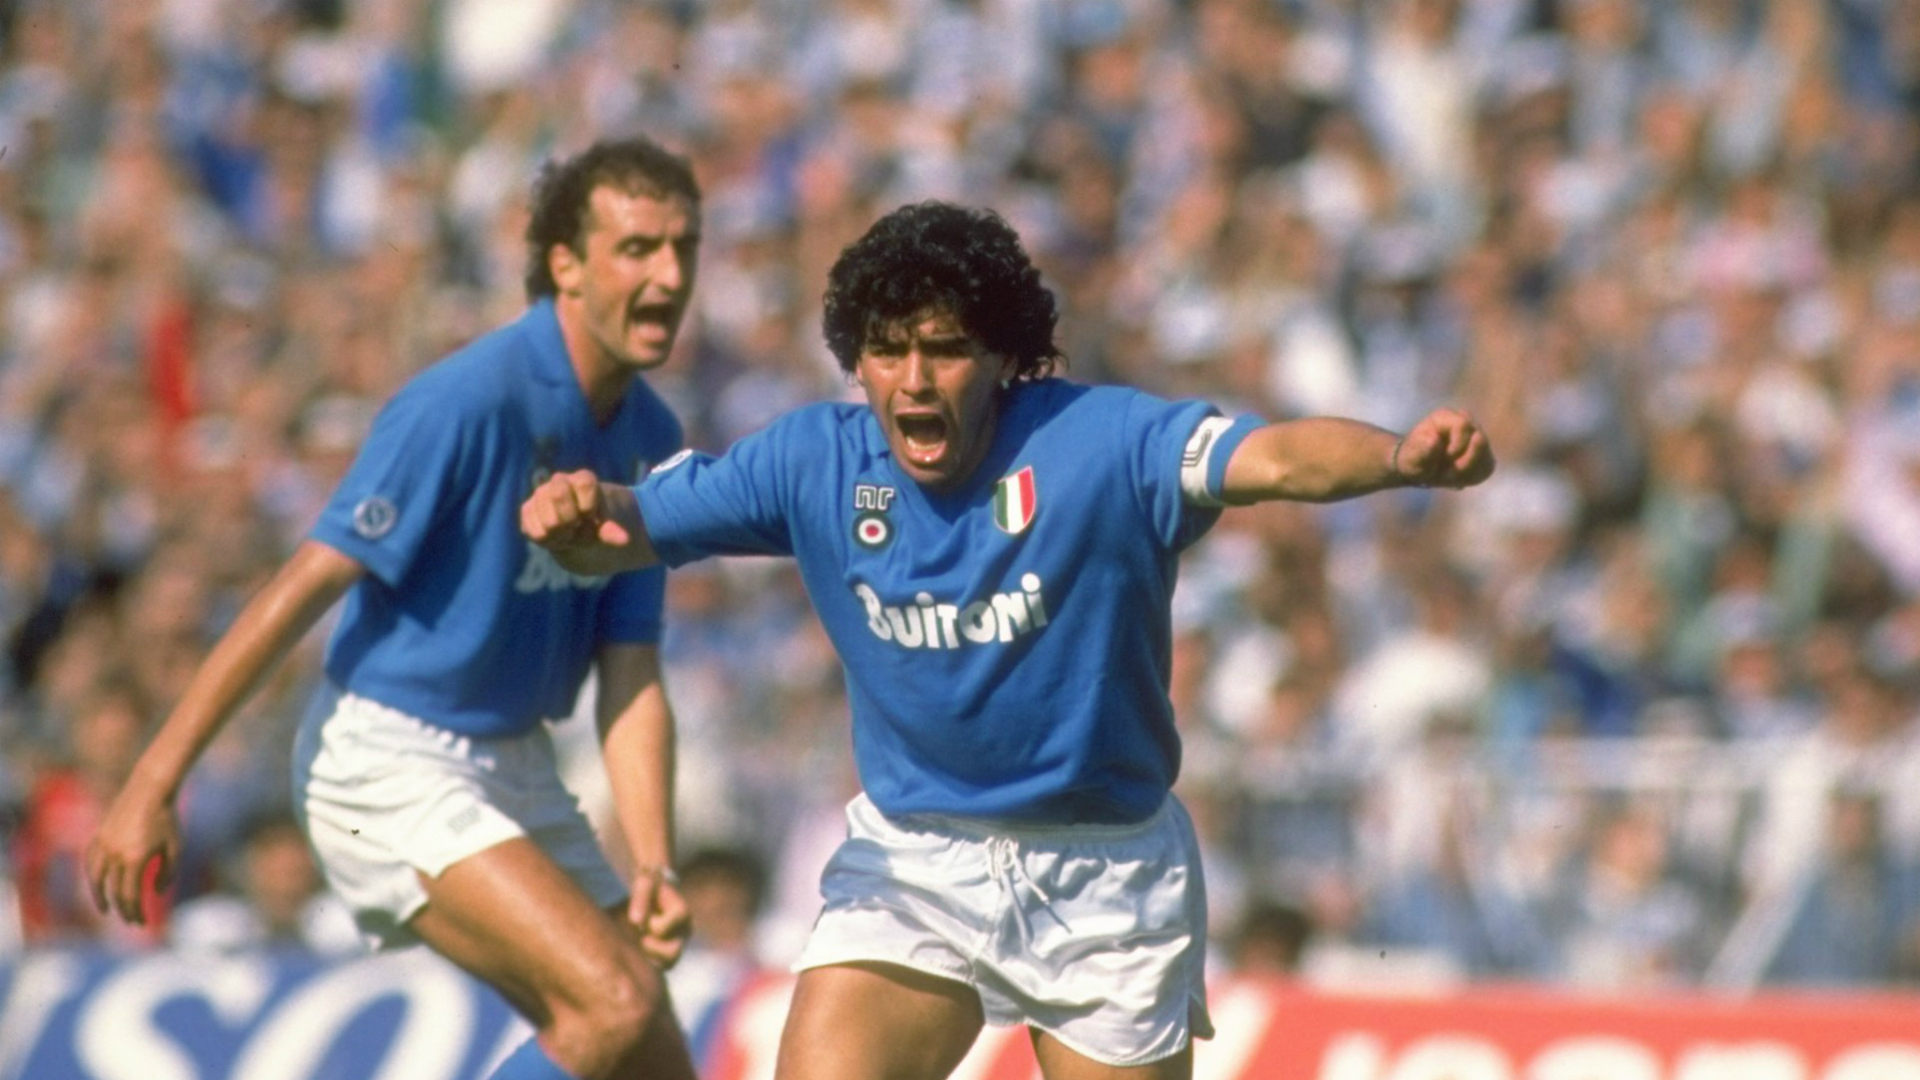 Diego Maradona dies: Goal of the century, World Cup glory and Napoli's talisman – his five greatest achievements